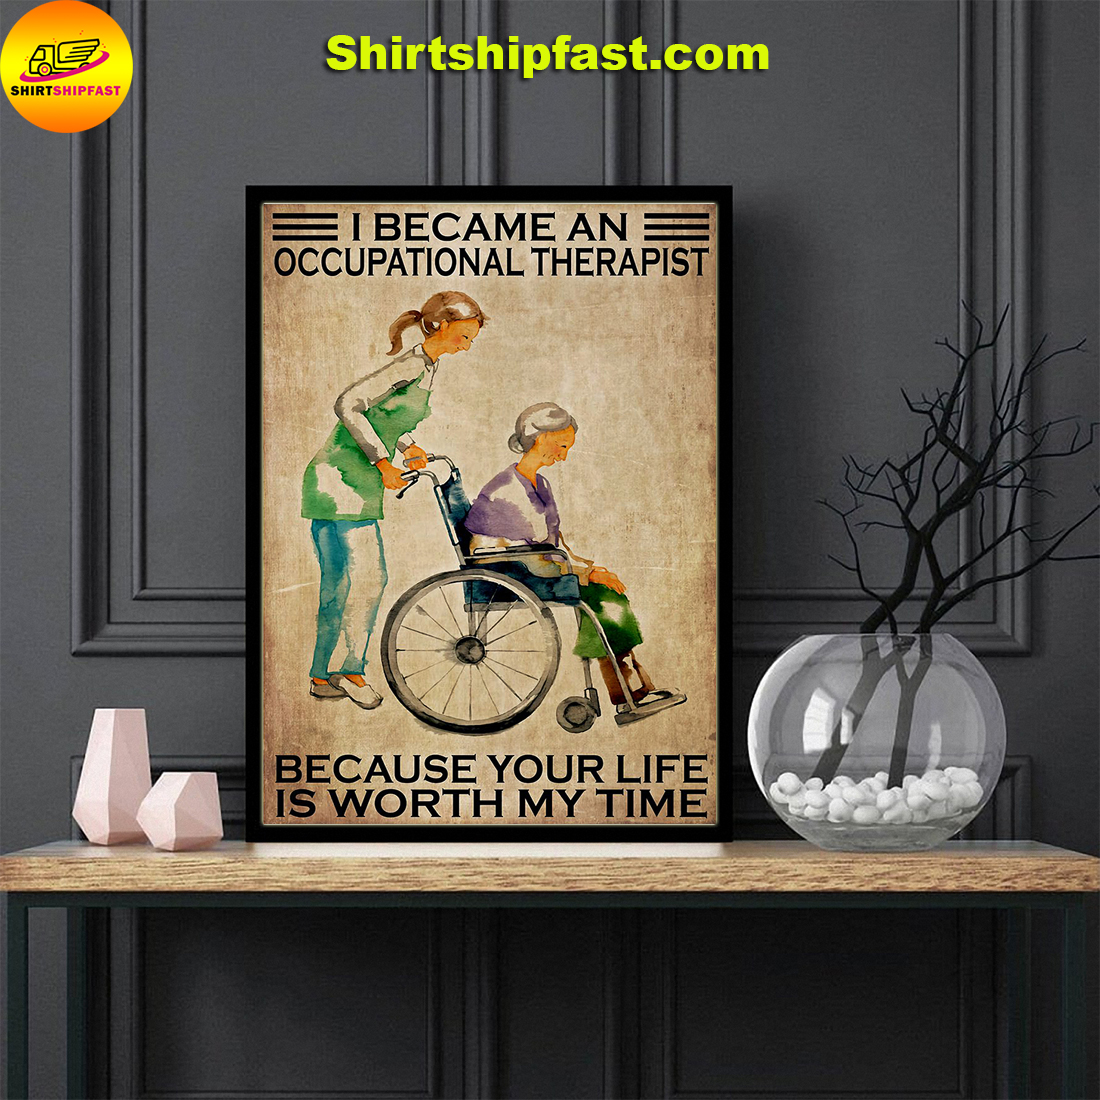 I became an occupational therapist because your life is worth my time poster - Picture 3